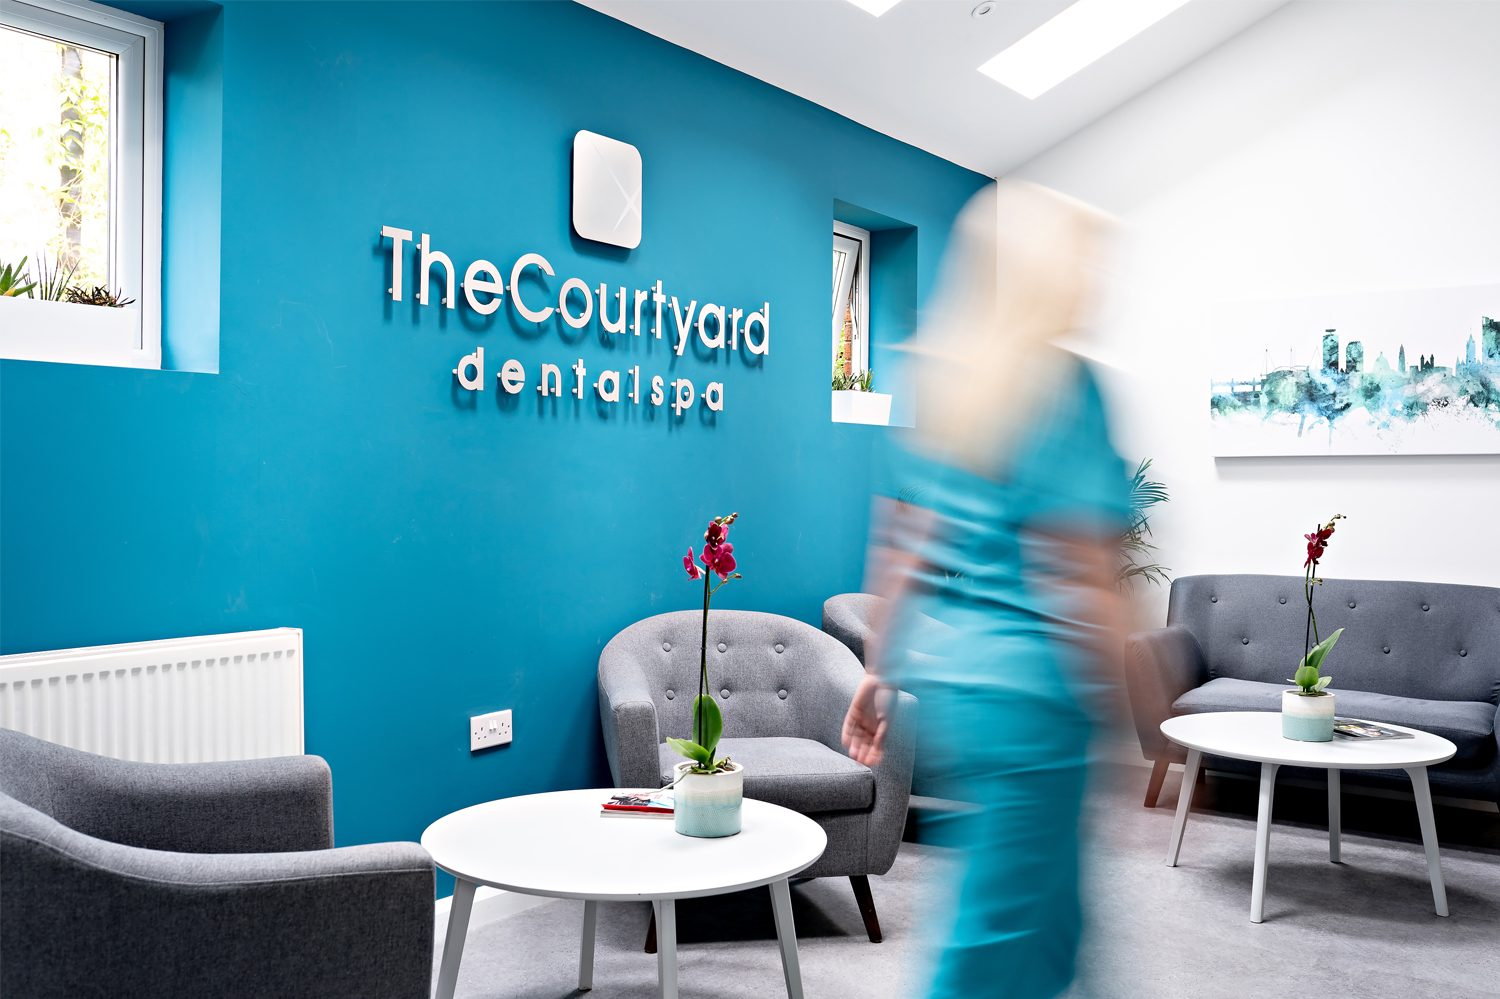 The Courtyard Dental Care